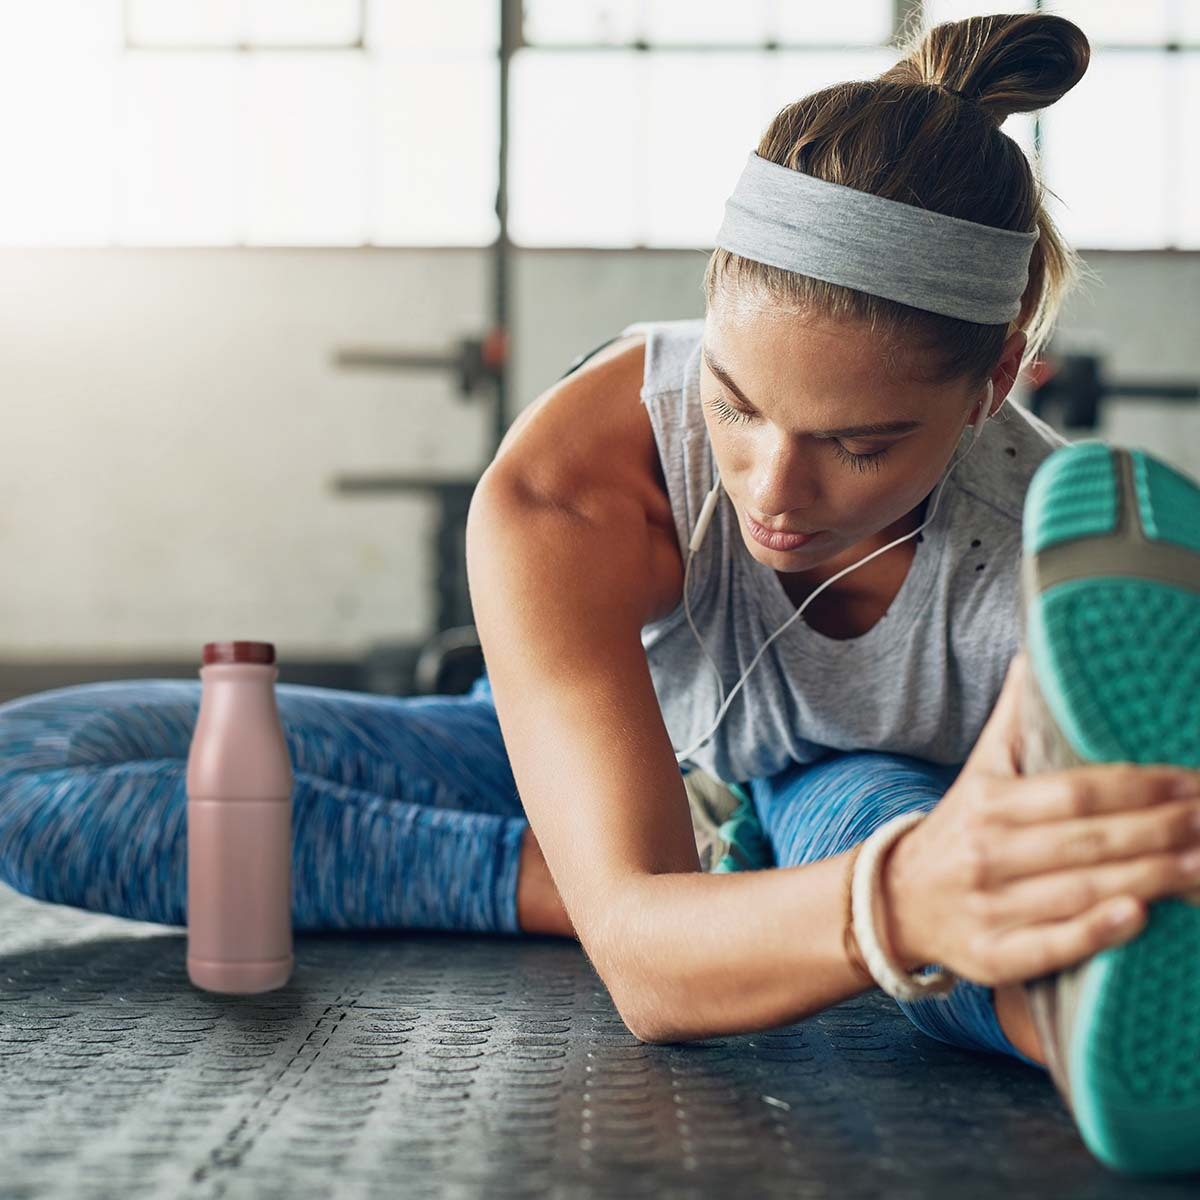 woman in workout clothes stretching her hamstring with a bottle of chocolate milk nearby